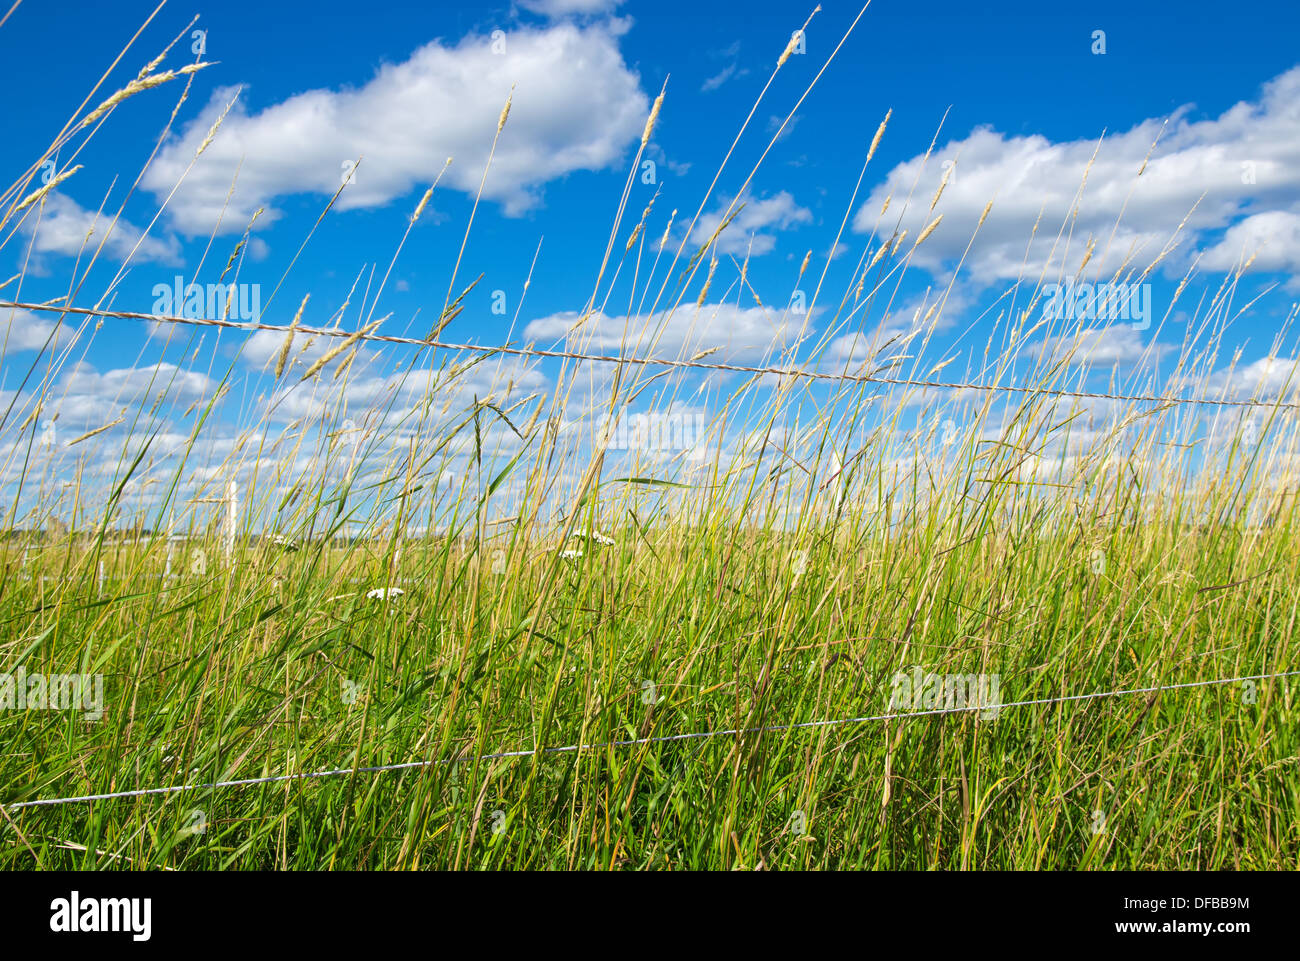 Green field on a farm, under the blue sky with clouds. - Stock Image